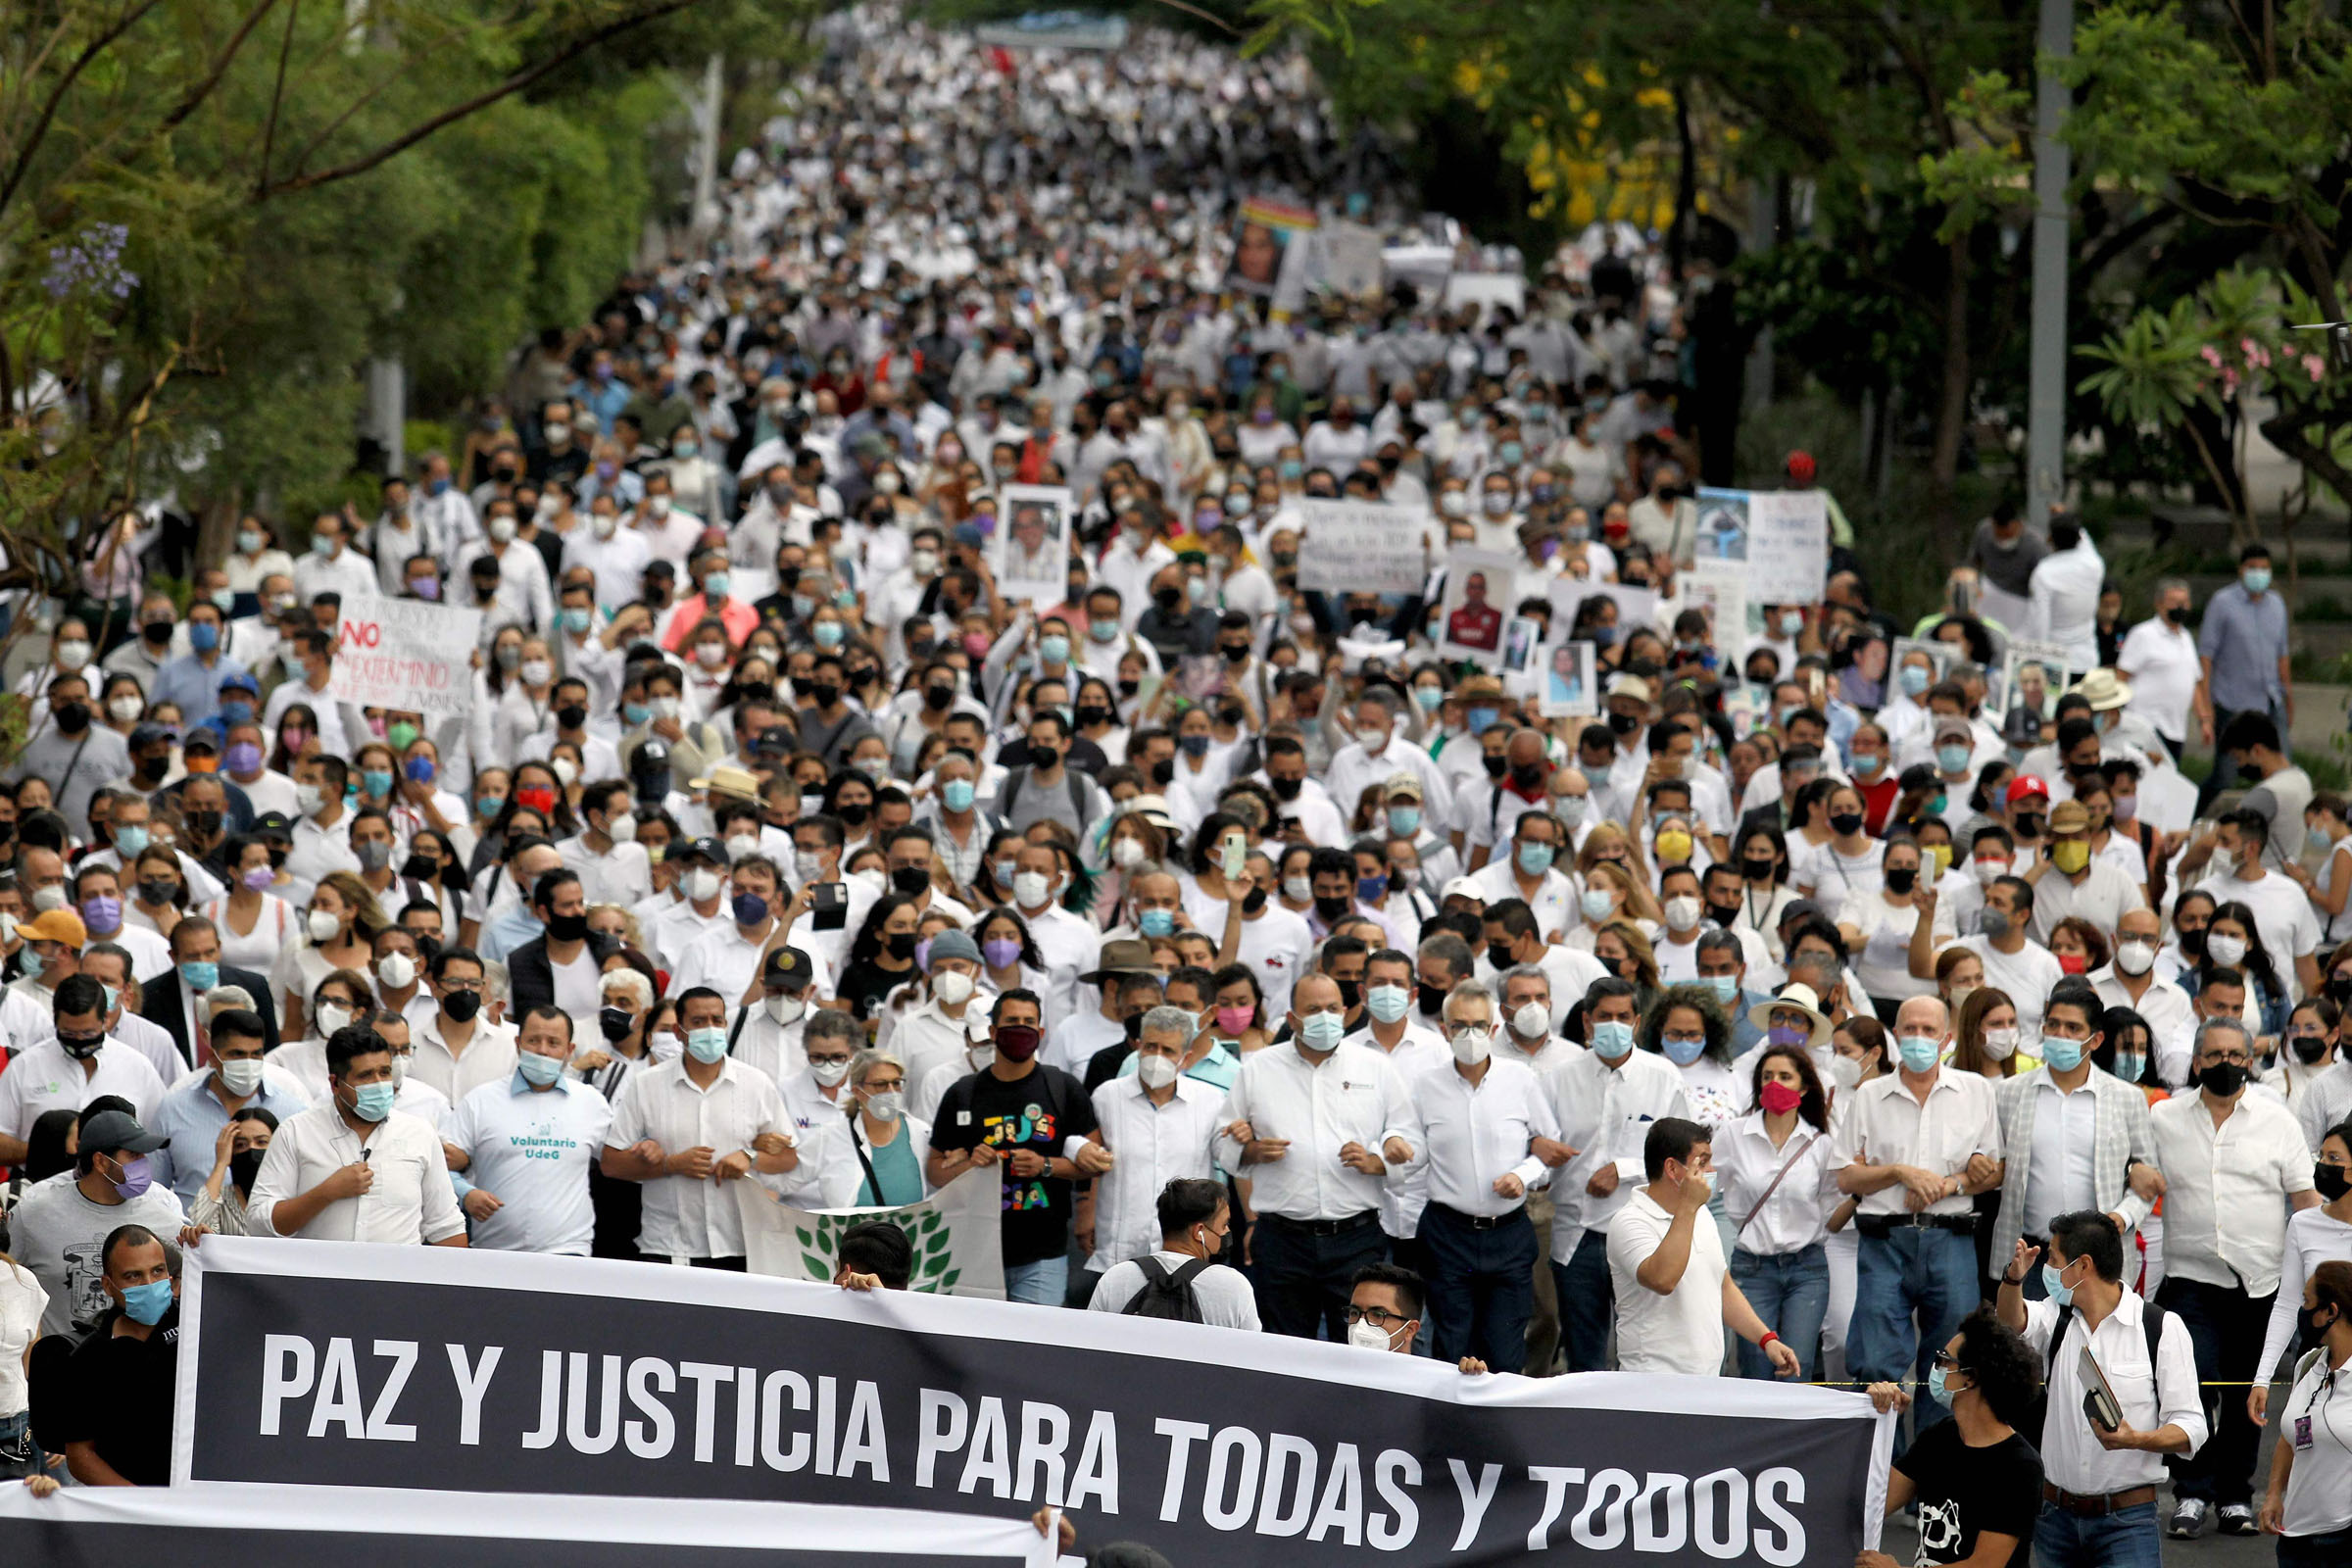 Students, teachers and activists participate in the 'March of Peace and Justice' demanding justice to the Mexican government on the case of three siblings Ana Karen, Luis Angel and Jose Alberto Gonzalez who were found dead after been abducted from their home by an armed group, in Guadalajara, Jalisco state, Mexico, on May 11, 2021. (Photo by ULISES RUIZ / AFP)